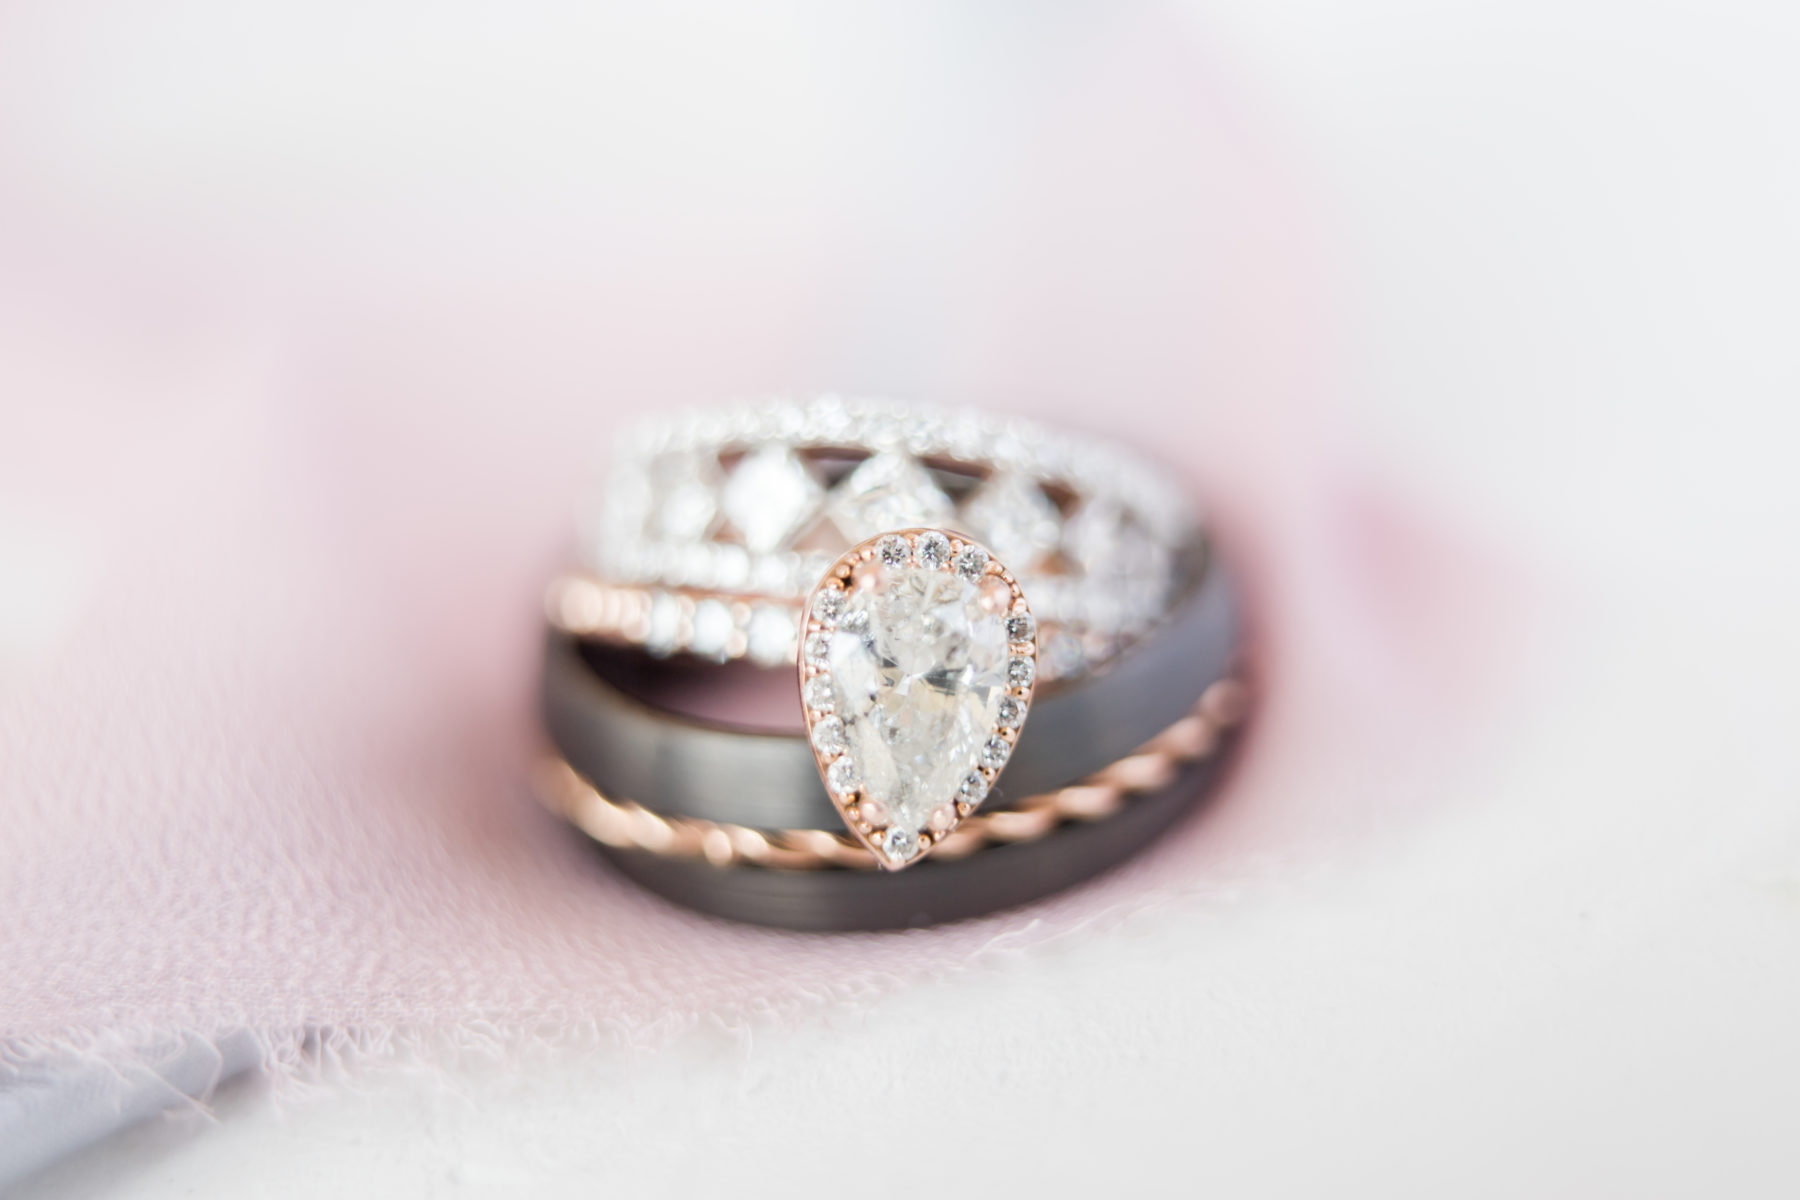 Pear-shaped wedding ring: Romantic Blush & Metallic Inspired Wedding featured on Nashville Bride Guide